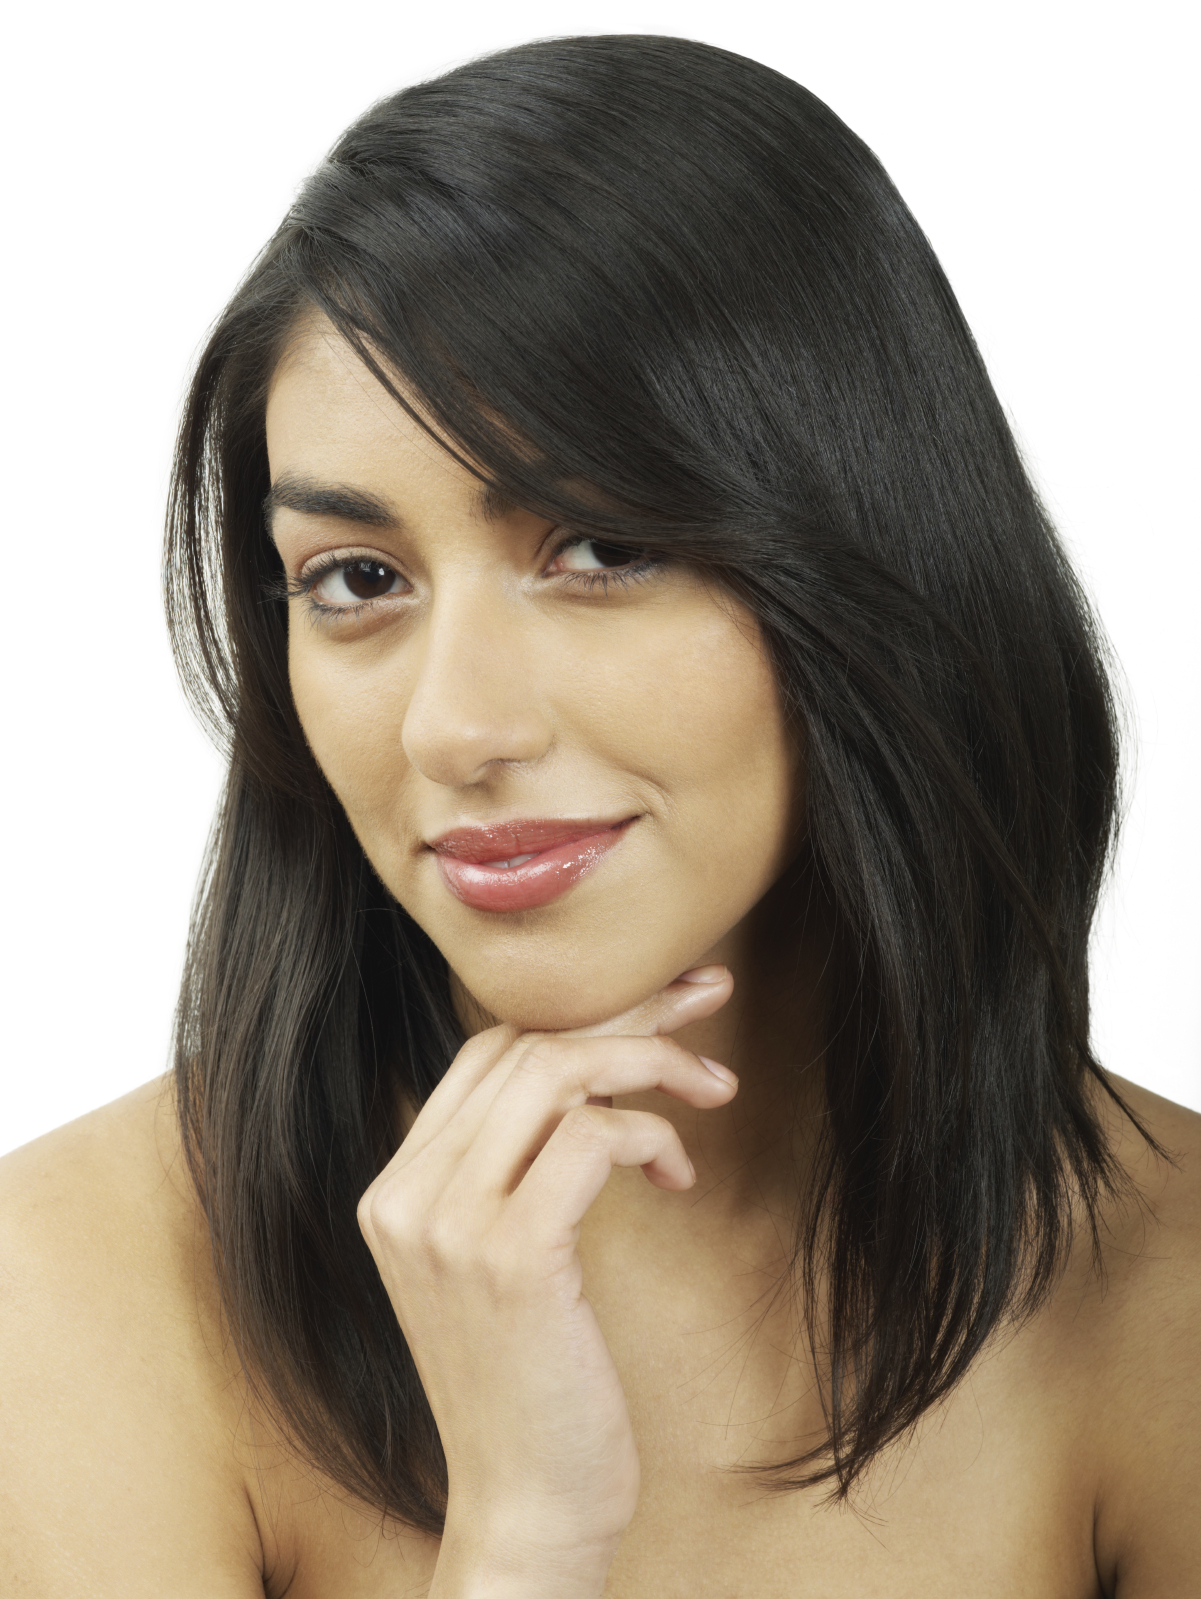 Middle Eastern and Indian Hair Care Tips - Toppik.com